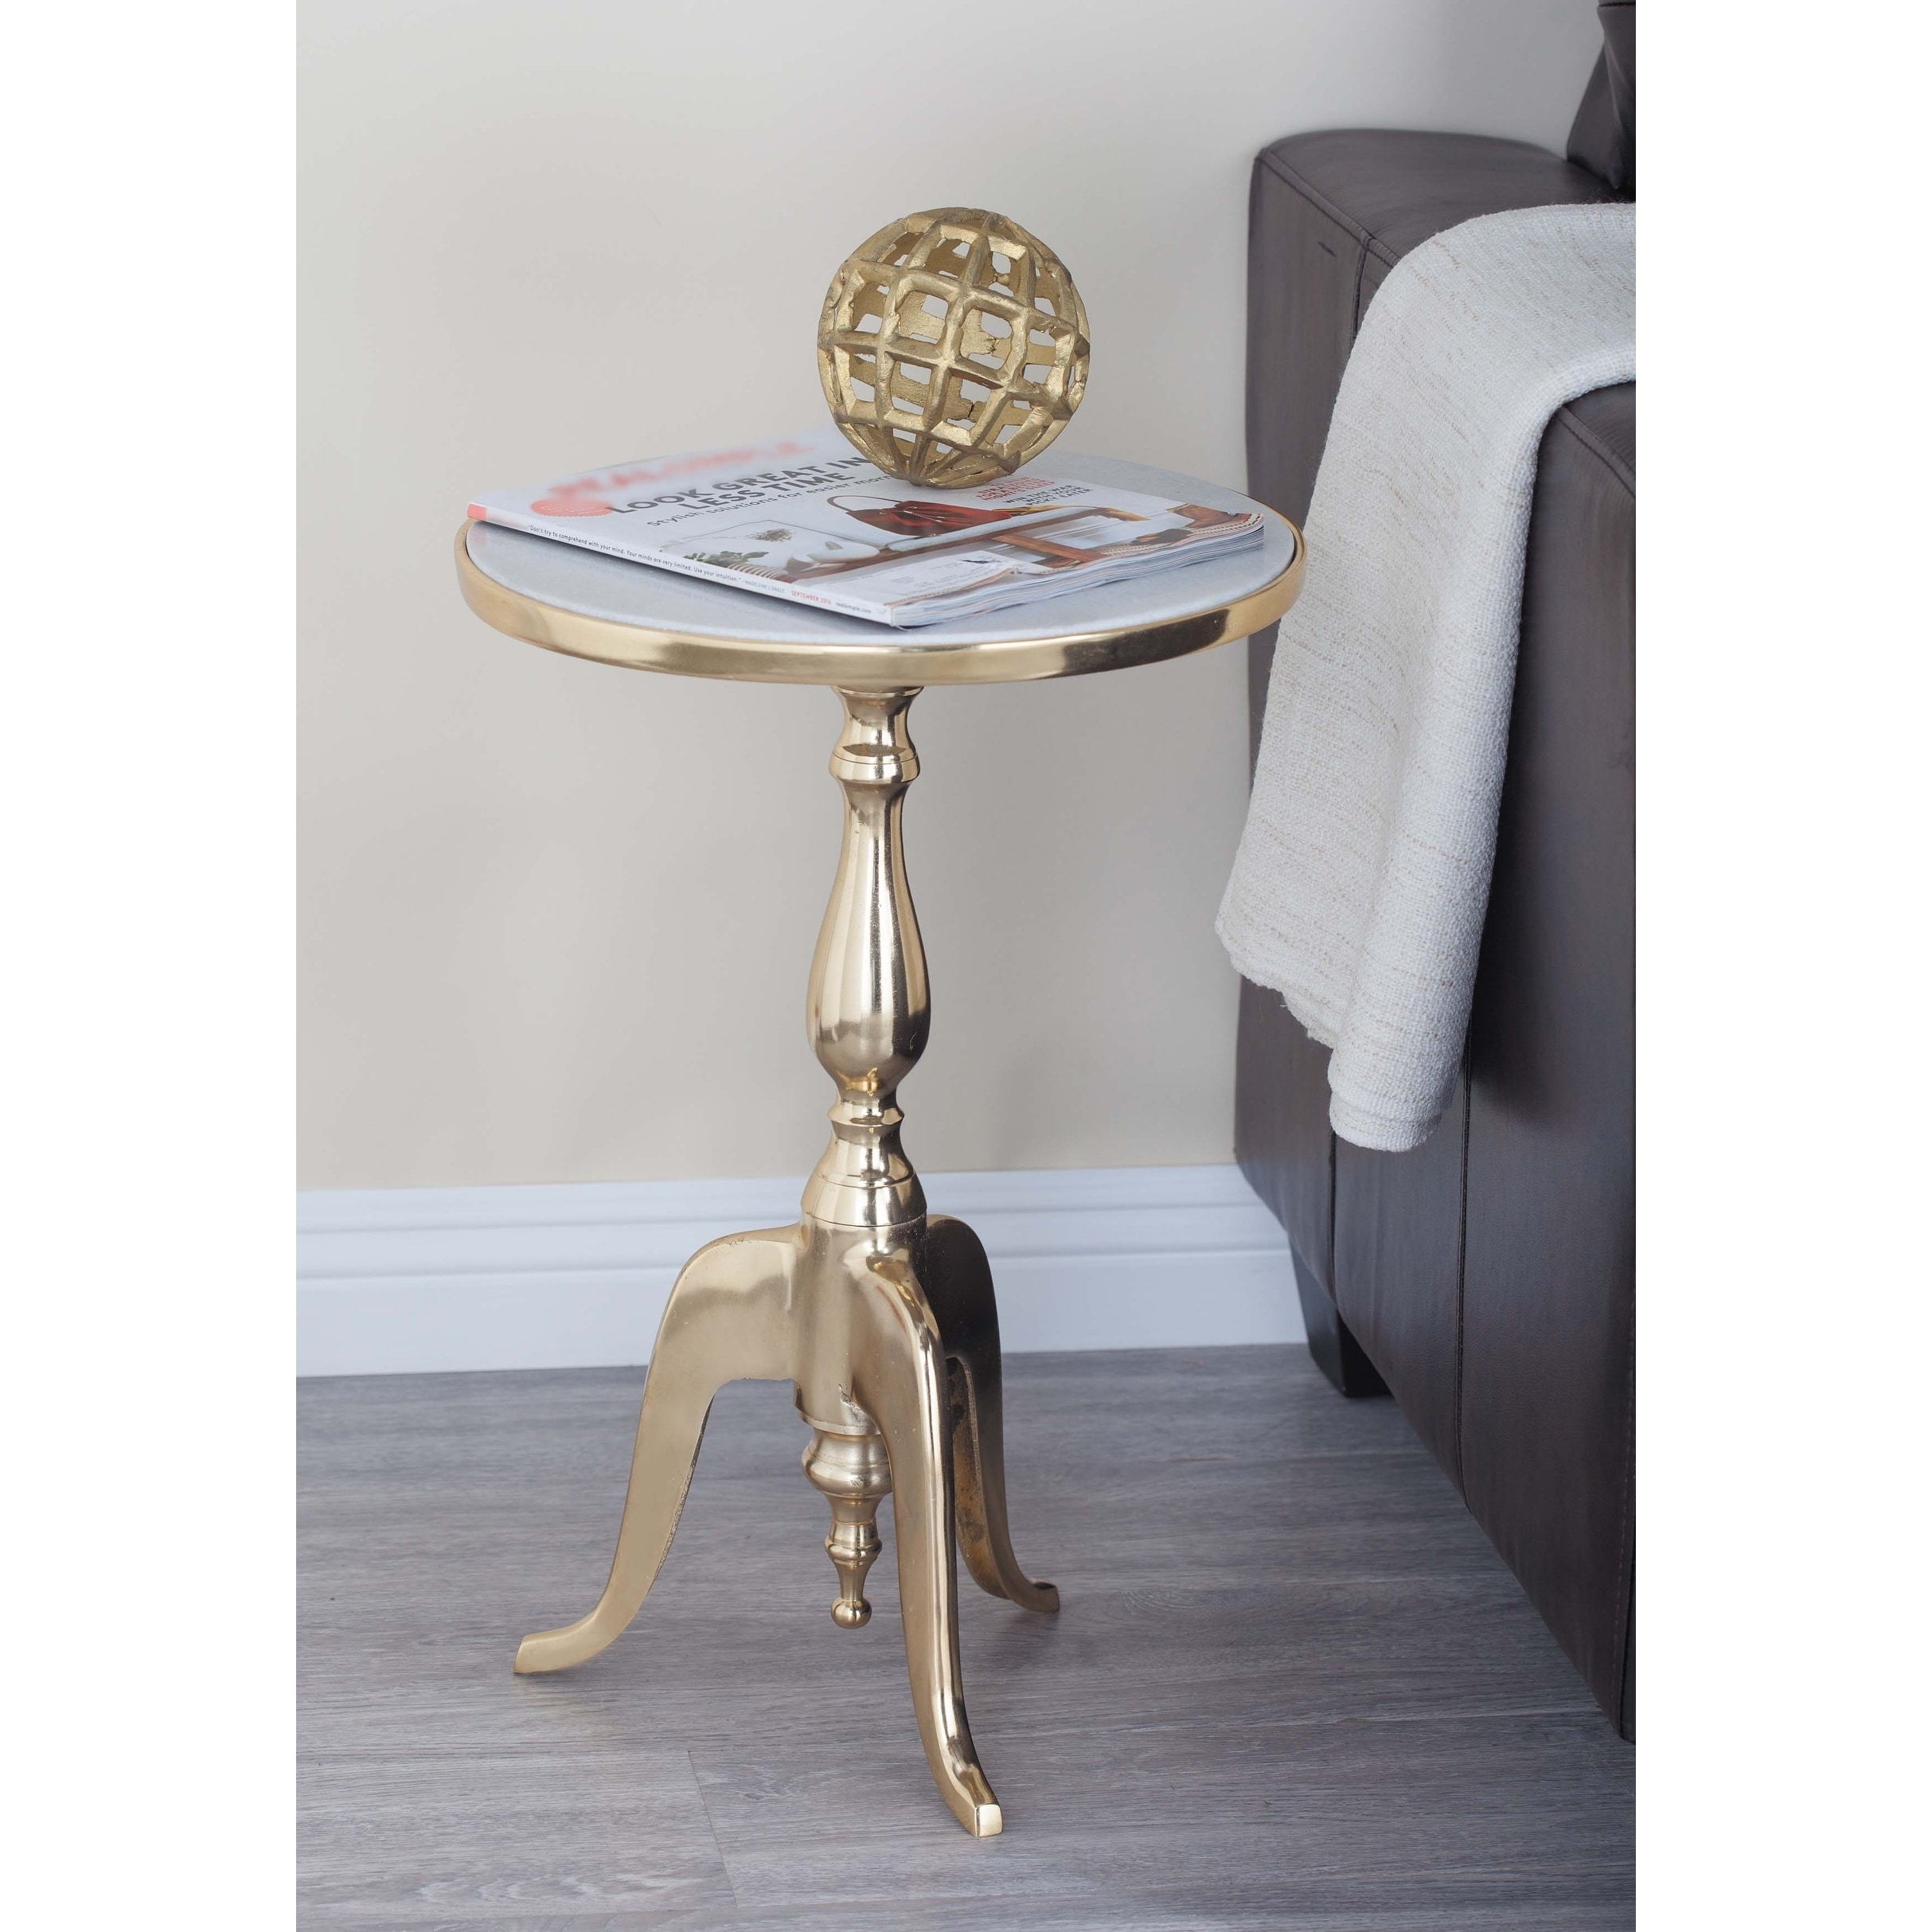 rusitc inch gold and gray round accent table studio free shipping today outdoor top covers rectangle end with drawer dining room chairs arms antique white square coffee ideas pier